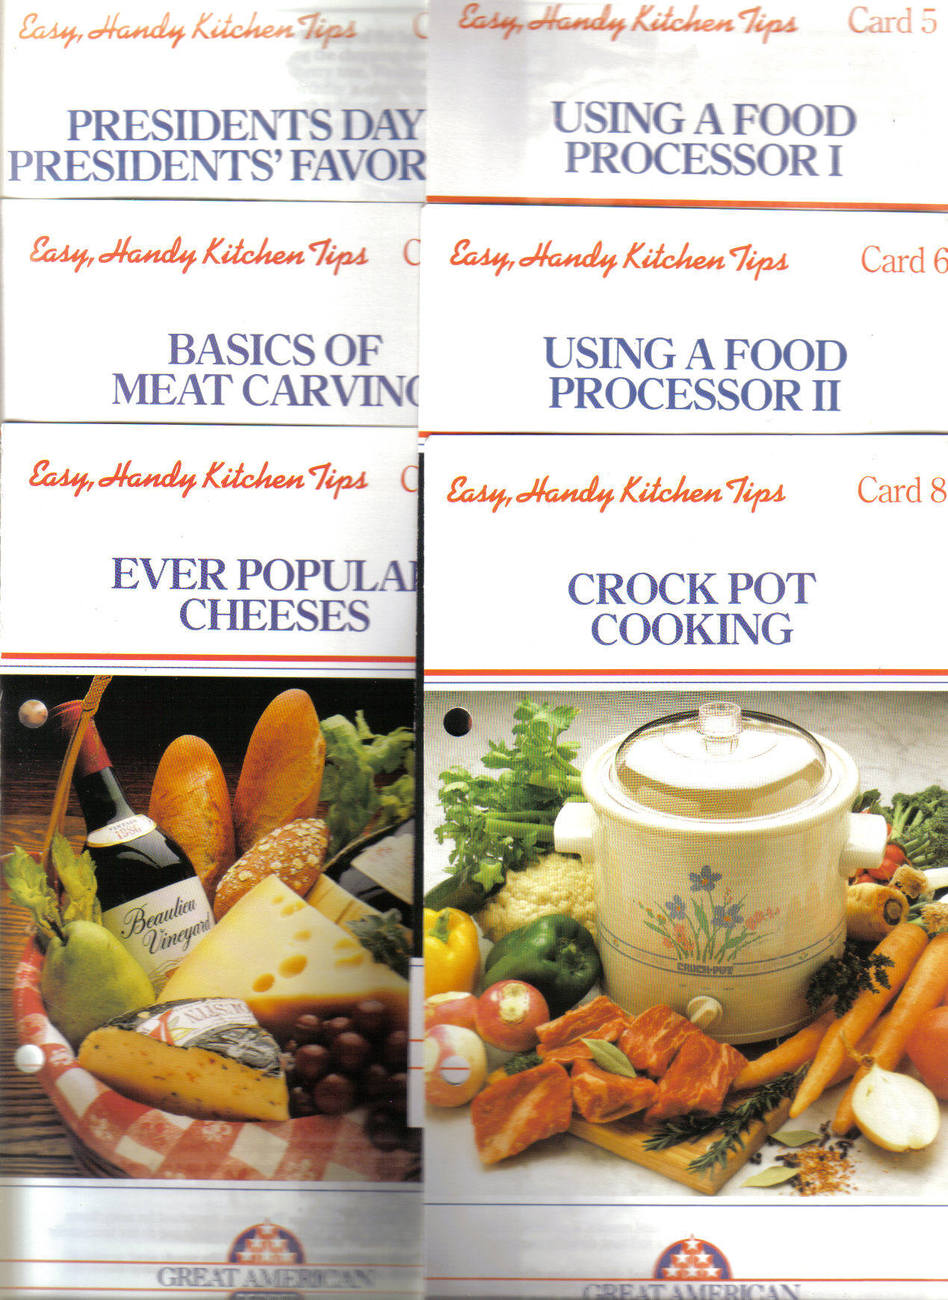 6 Great American Recipes CARDS:PROCESSOR;CROCKPOT;CHEESES;MEAT CARVING;PRESIDENT